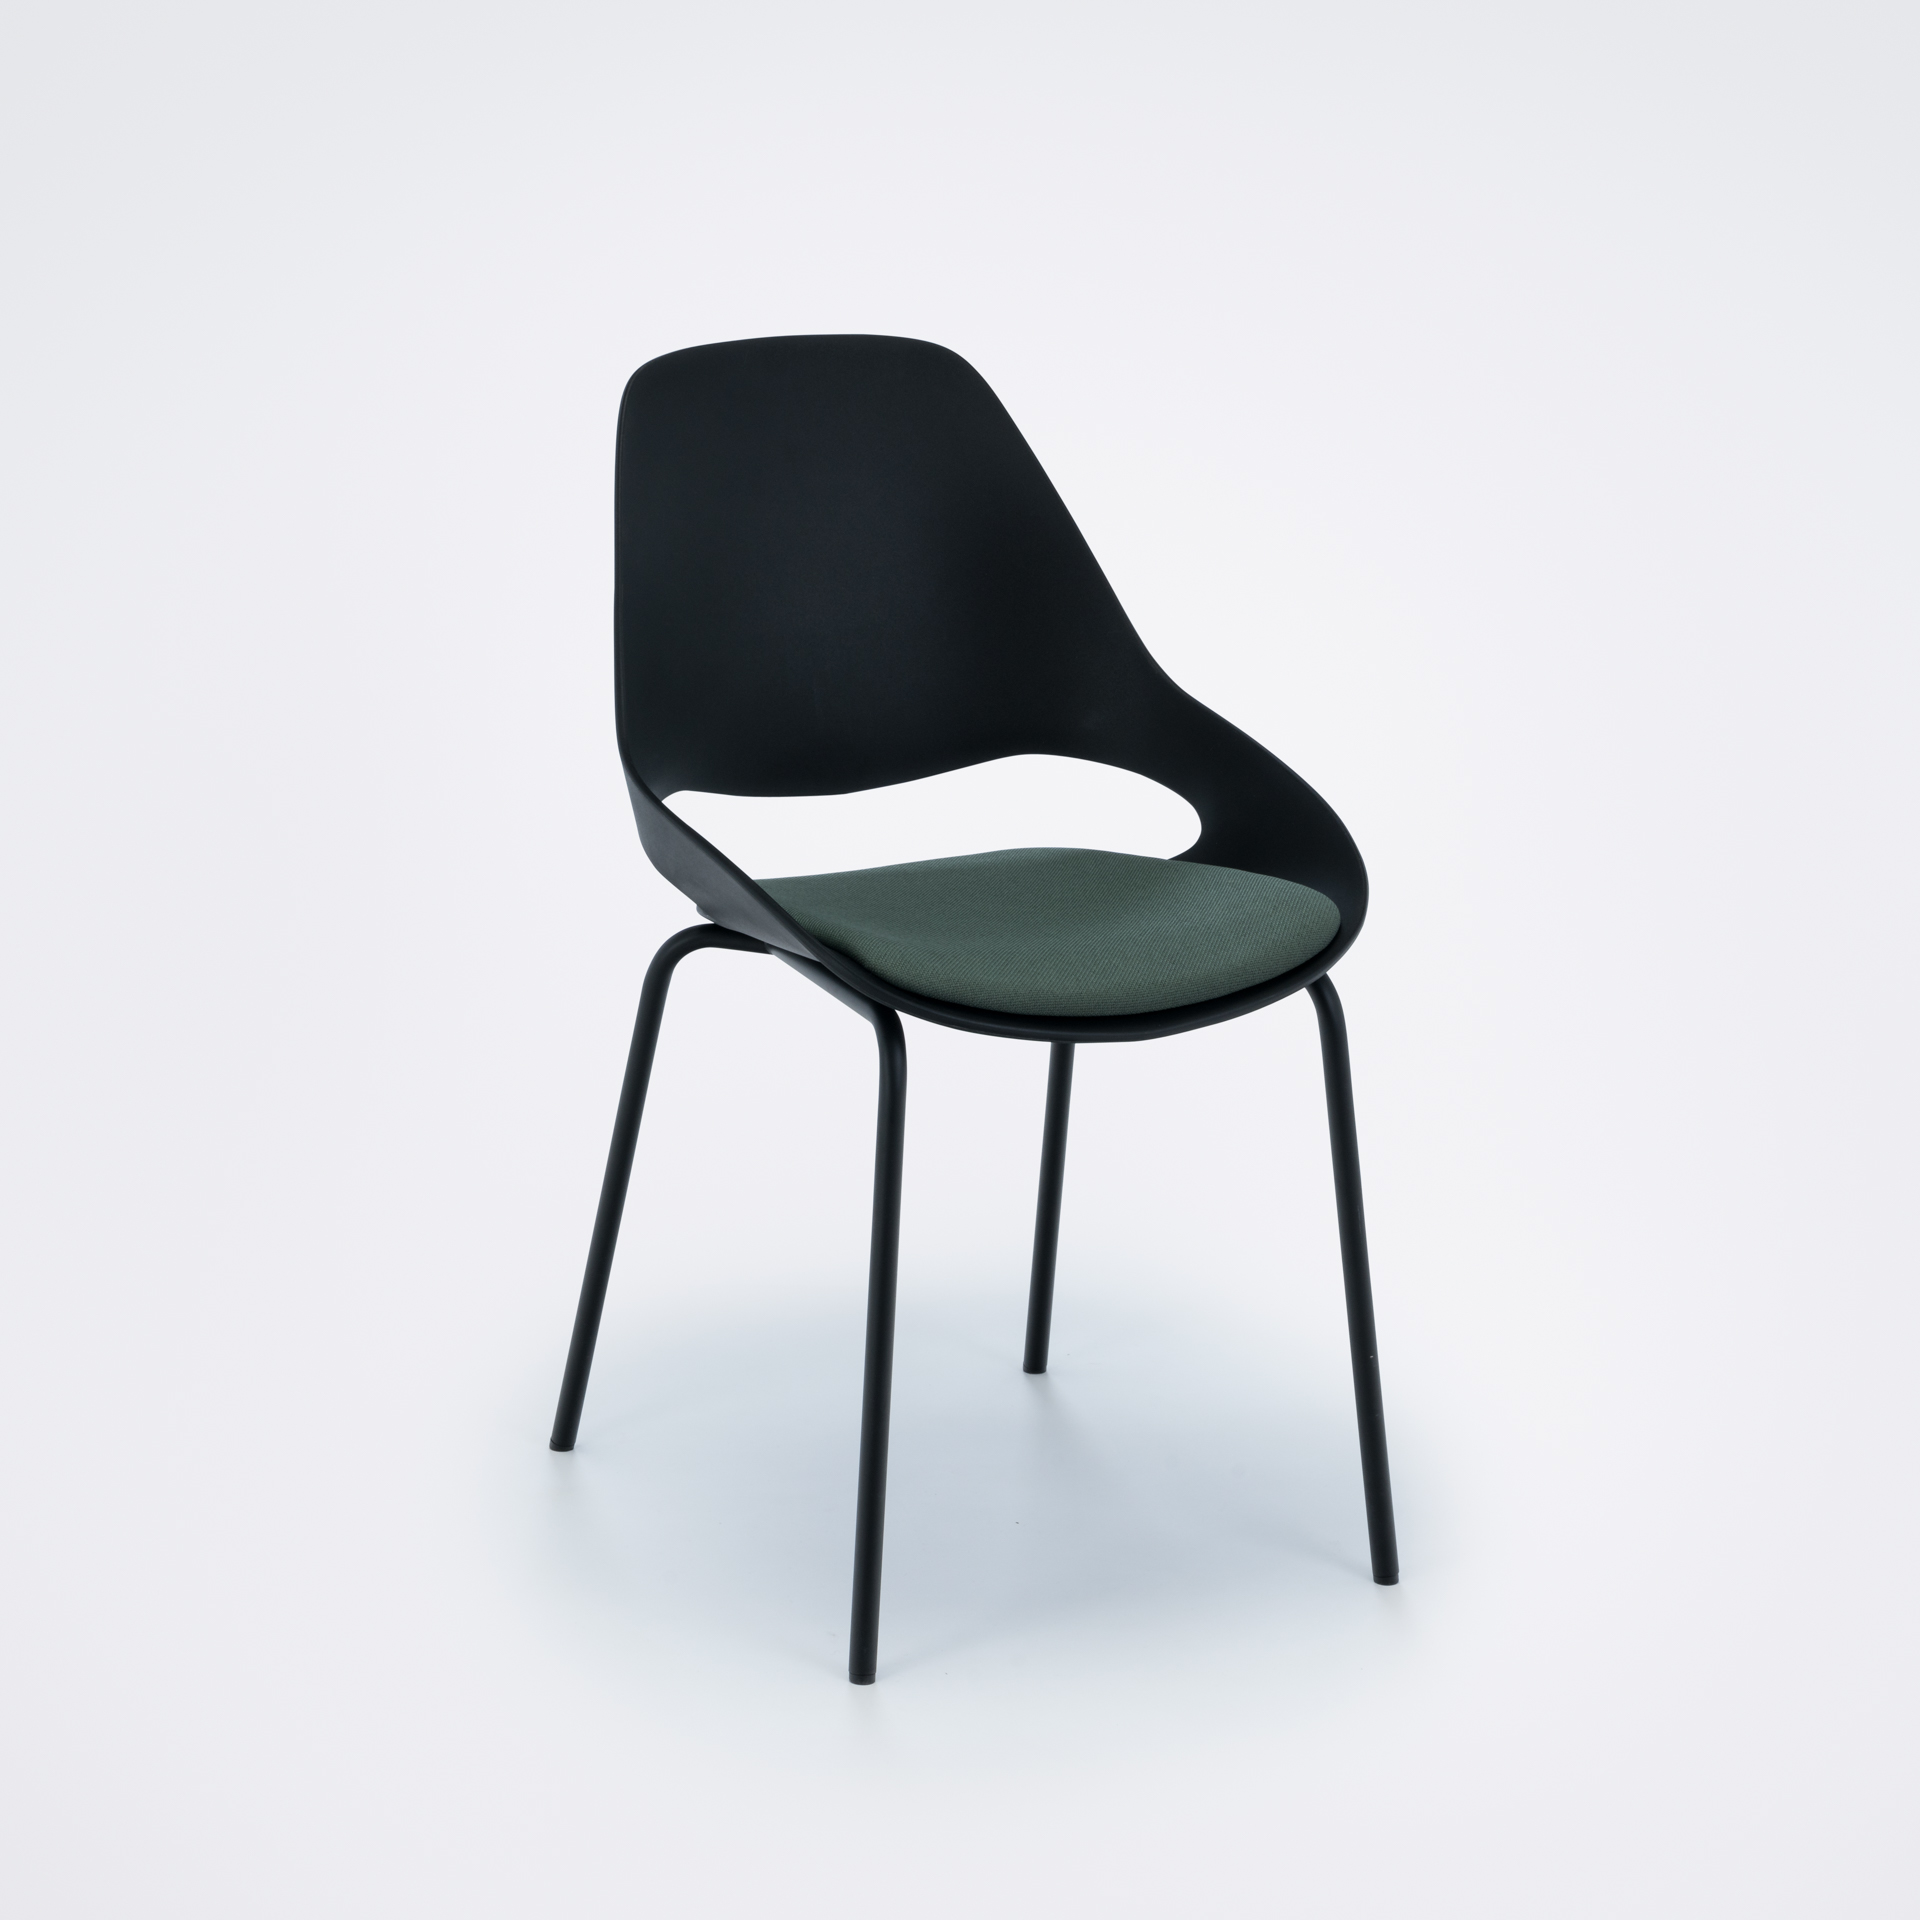 DINING CHAIR WITH PADDED SEAT // Black/dark olive// Black metal legs